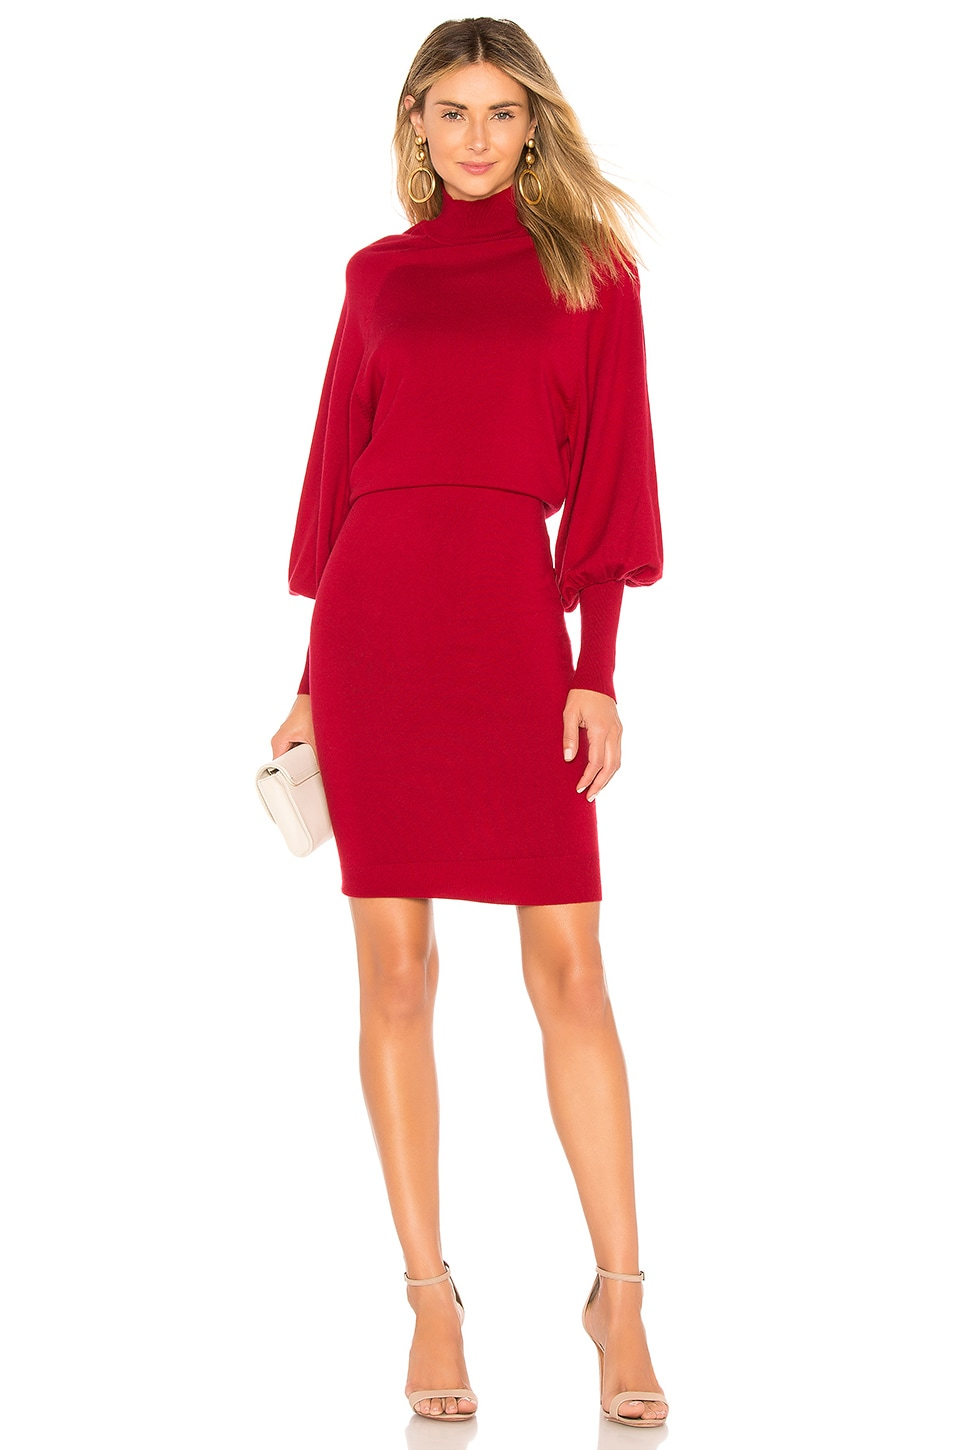 The Jen Sweater Dress